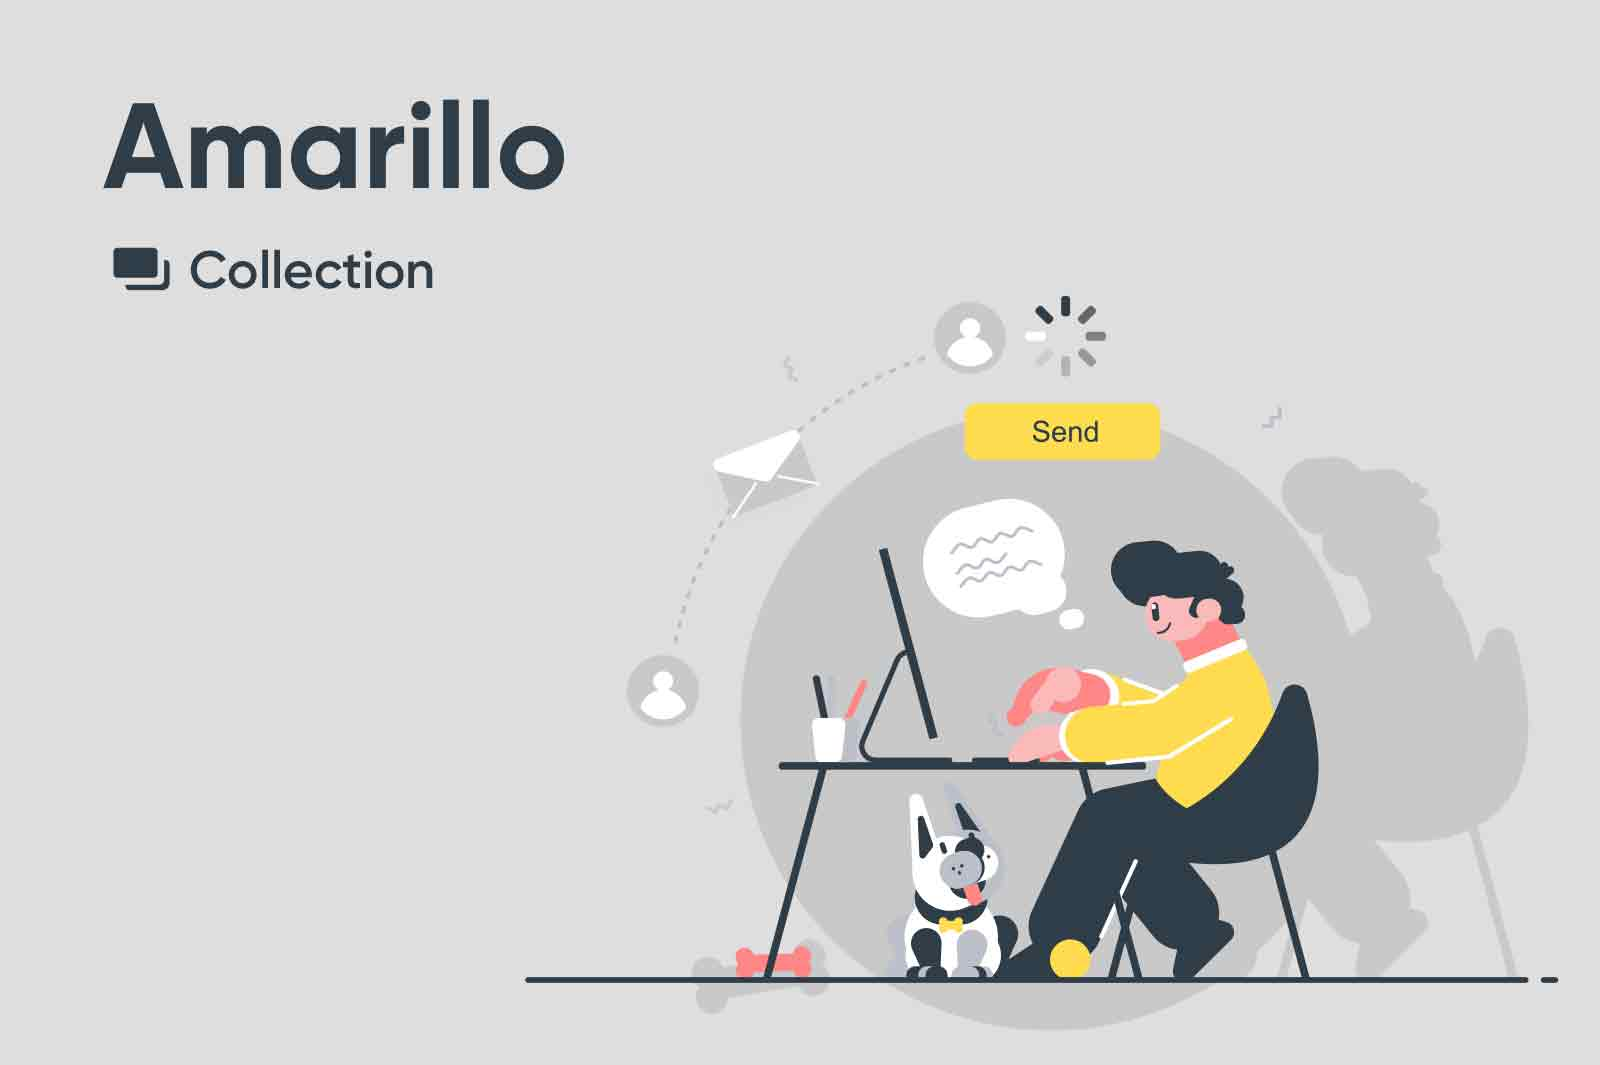 Simple yet informative illustrations made with limited color pallet and kind characters.